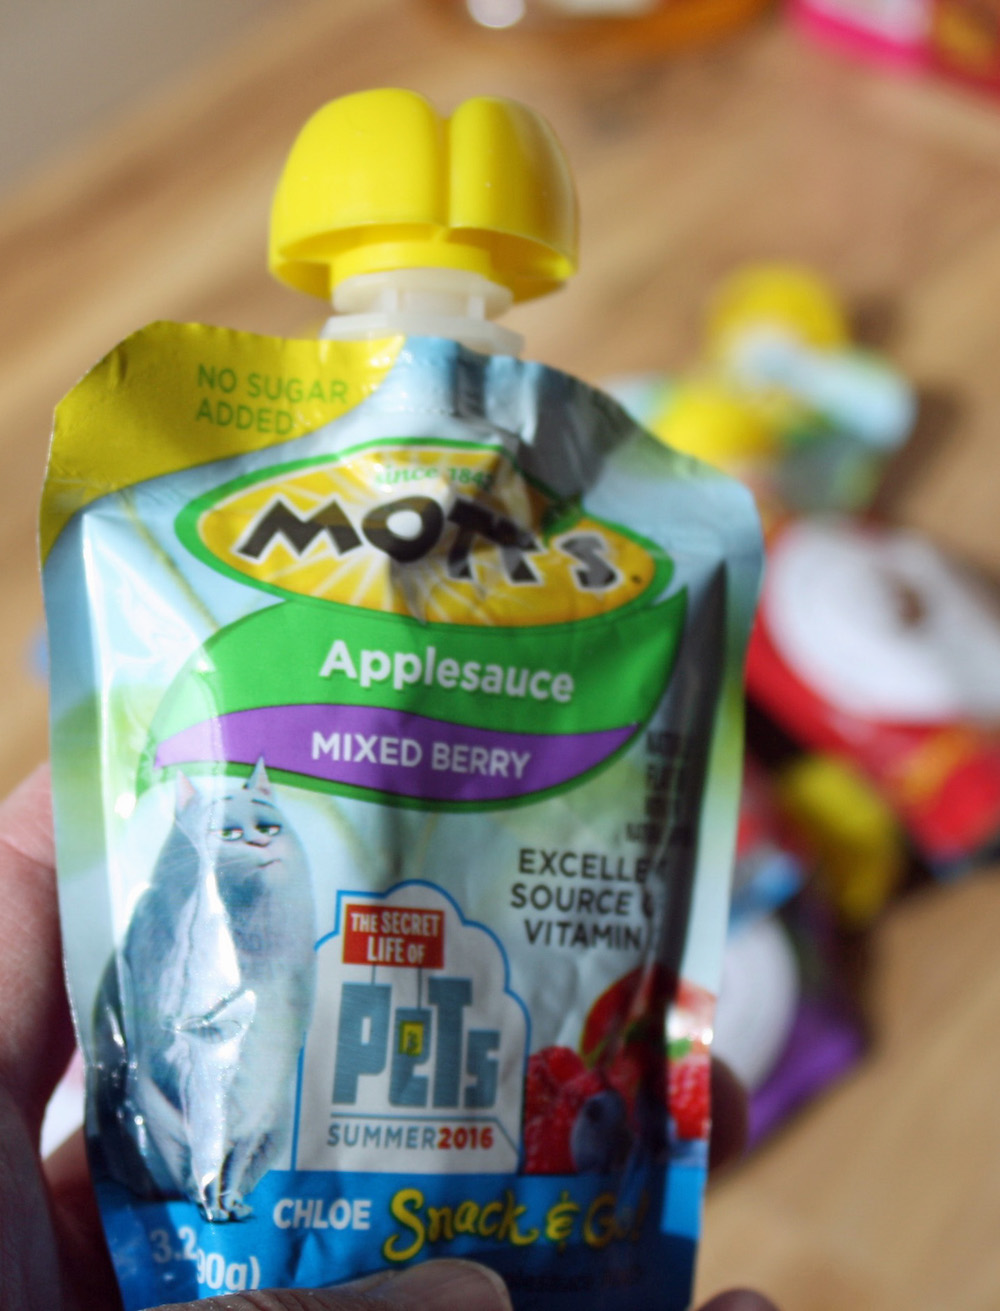 The Secret Life of Pets Motts Apple Sauce Packaging